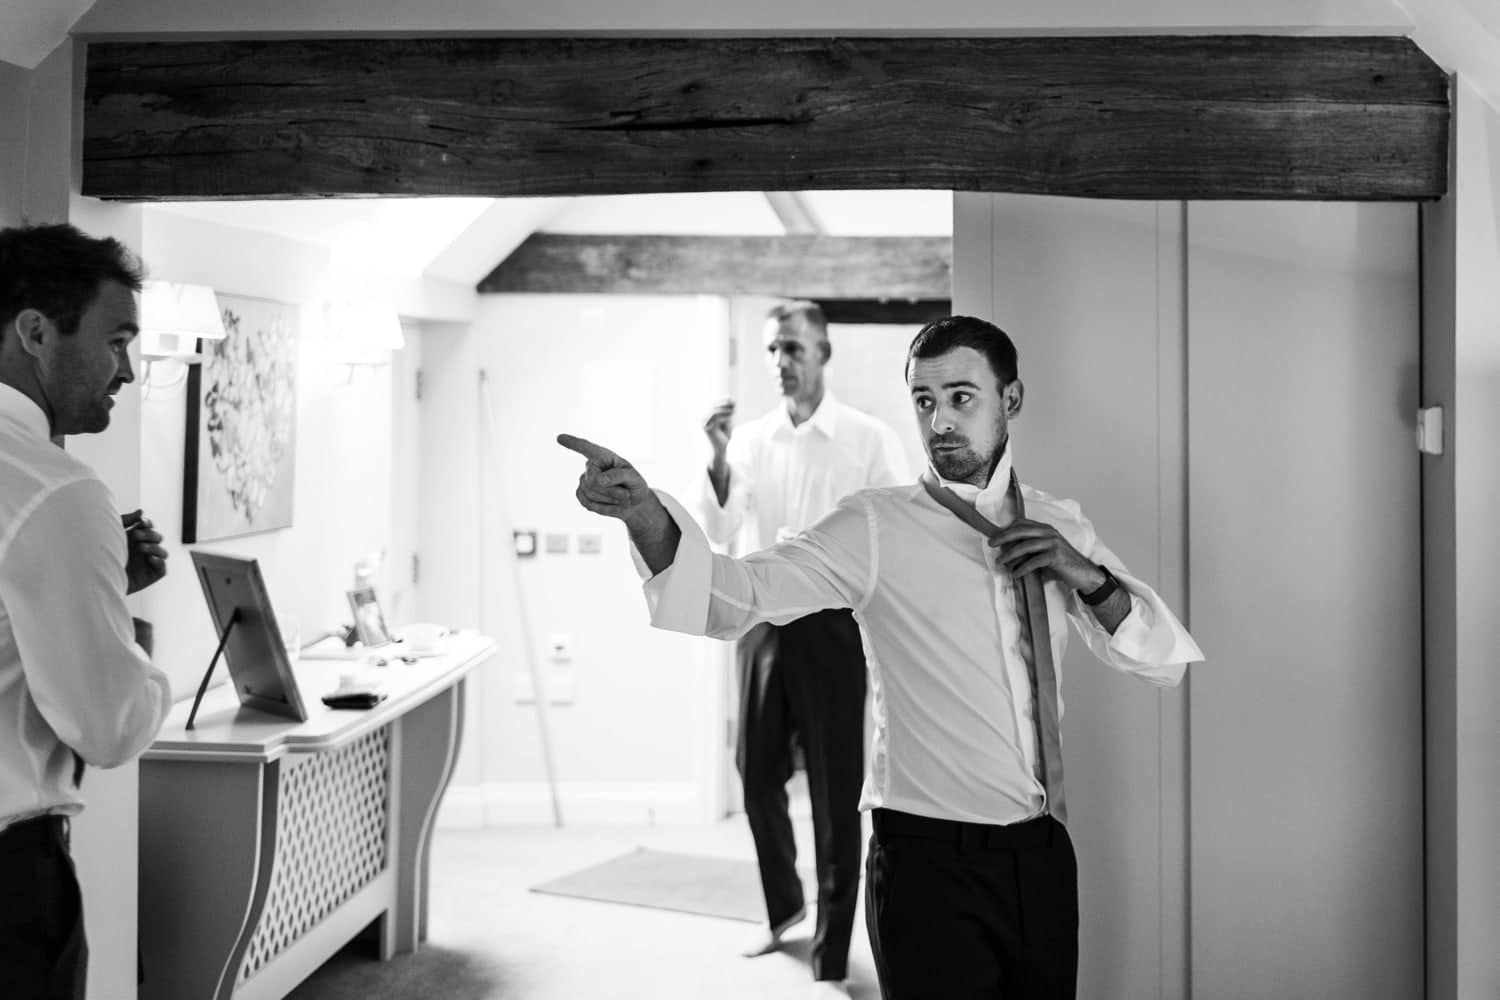 Groom getting ready for wedding at Curradine Barns